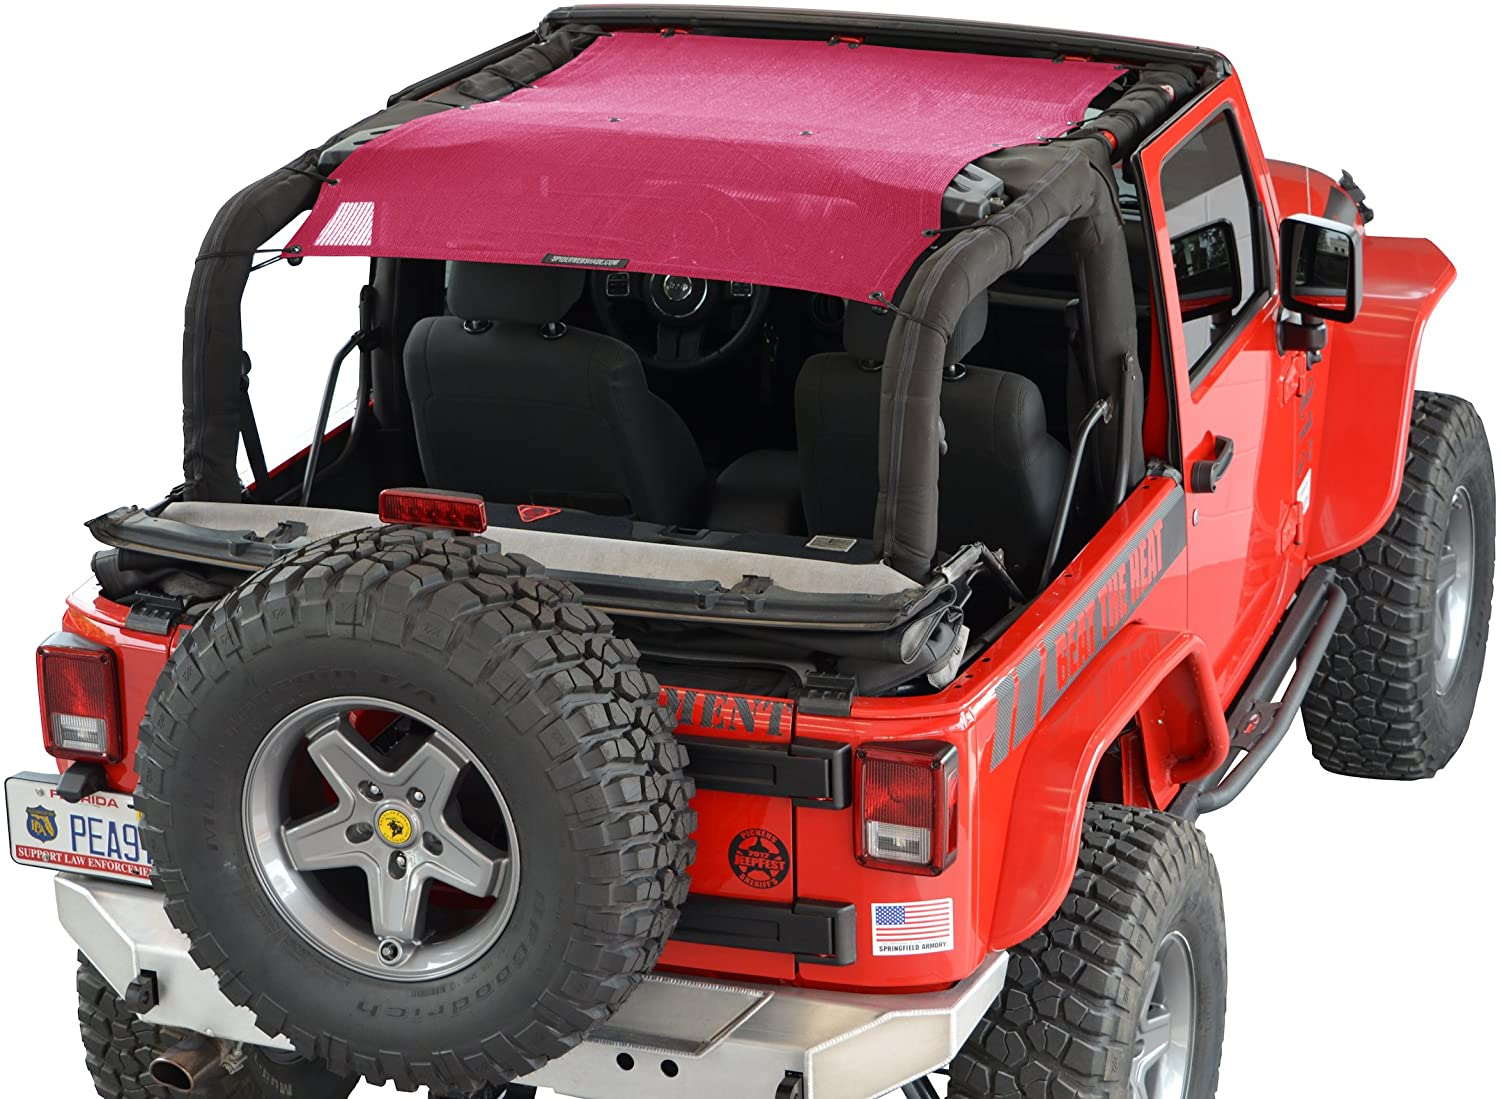 SPIDERWEBSHADE Jeep Wrangler Mesh Shade Top Sunshade UV Protection Accessory USA Made with 5 Year Warranty for Your JK 2-Door in Orange 2007-2018